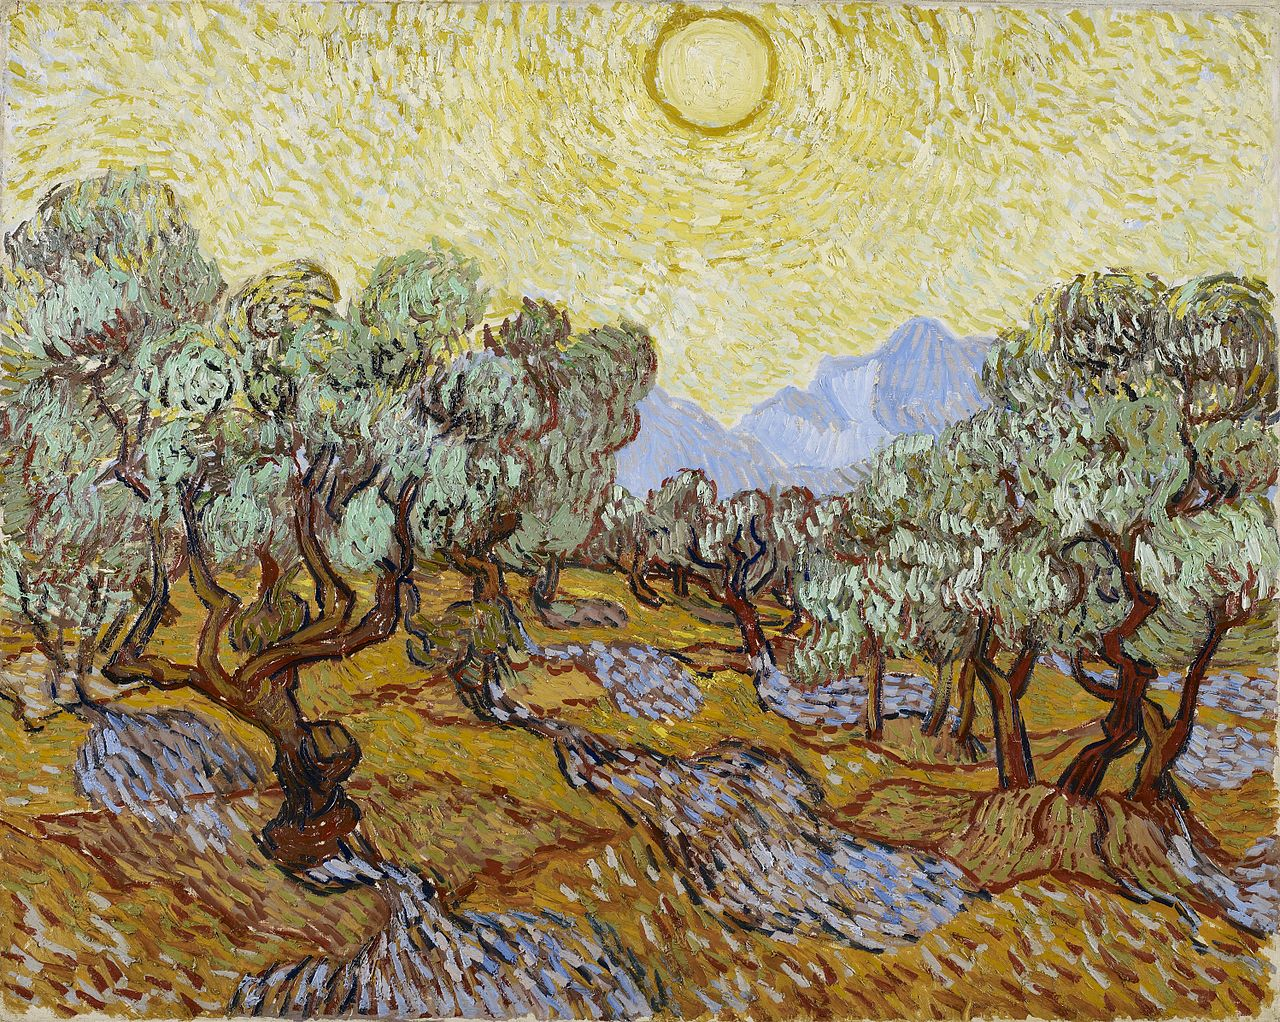 Van Gogh's Olive Trees with the Alpilles in the Background